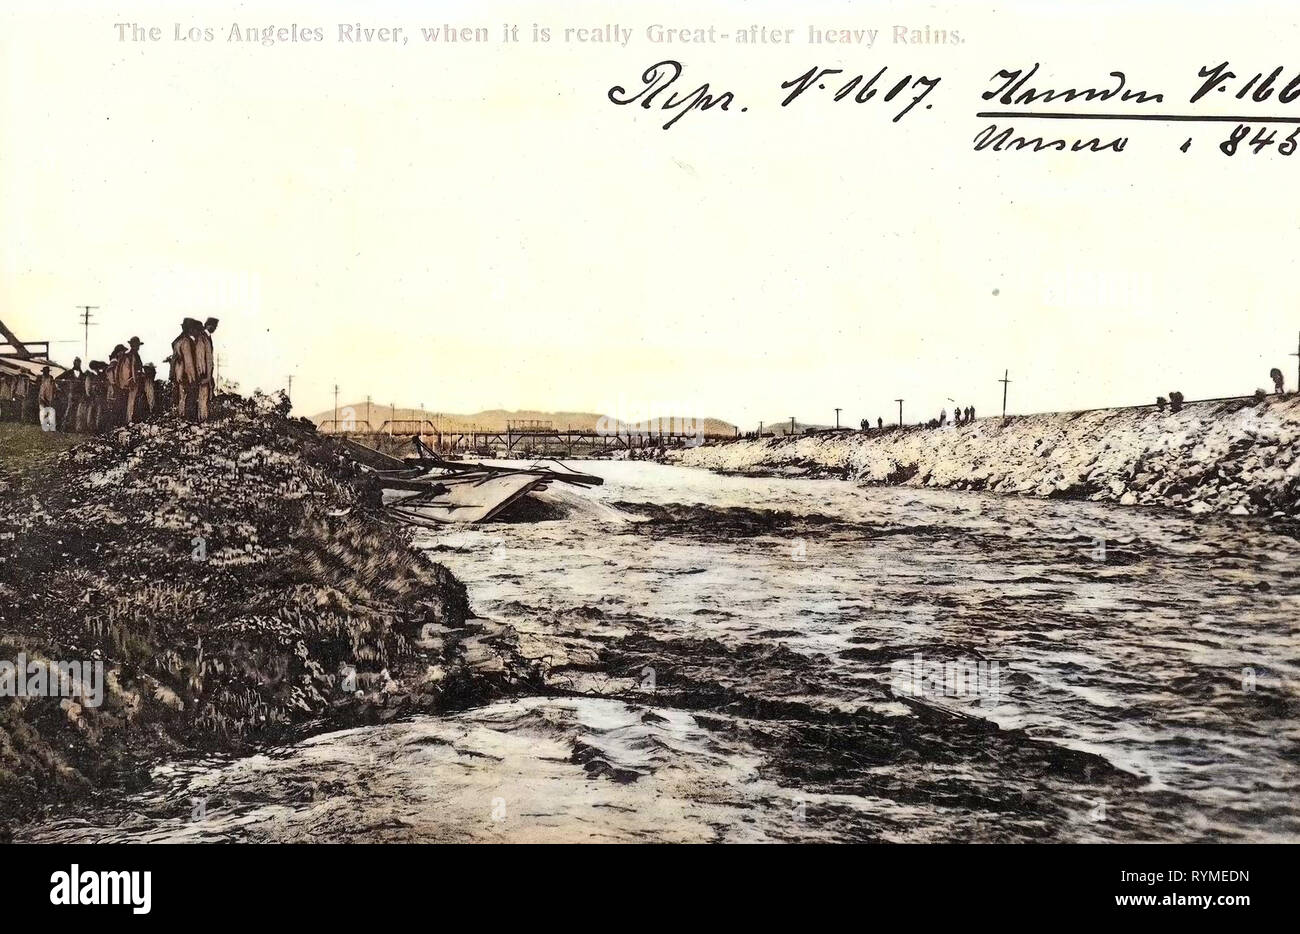 Rivers of California, 1906, California, Kalifornien, The Los Angeles River, when it is really great, after heavy rains', United States of America - Stock Image